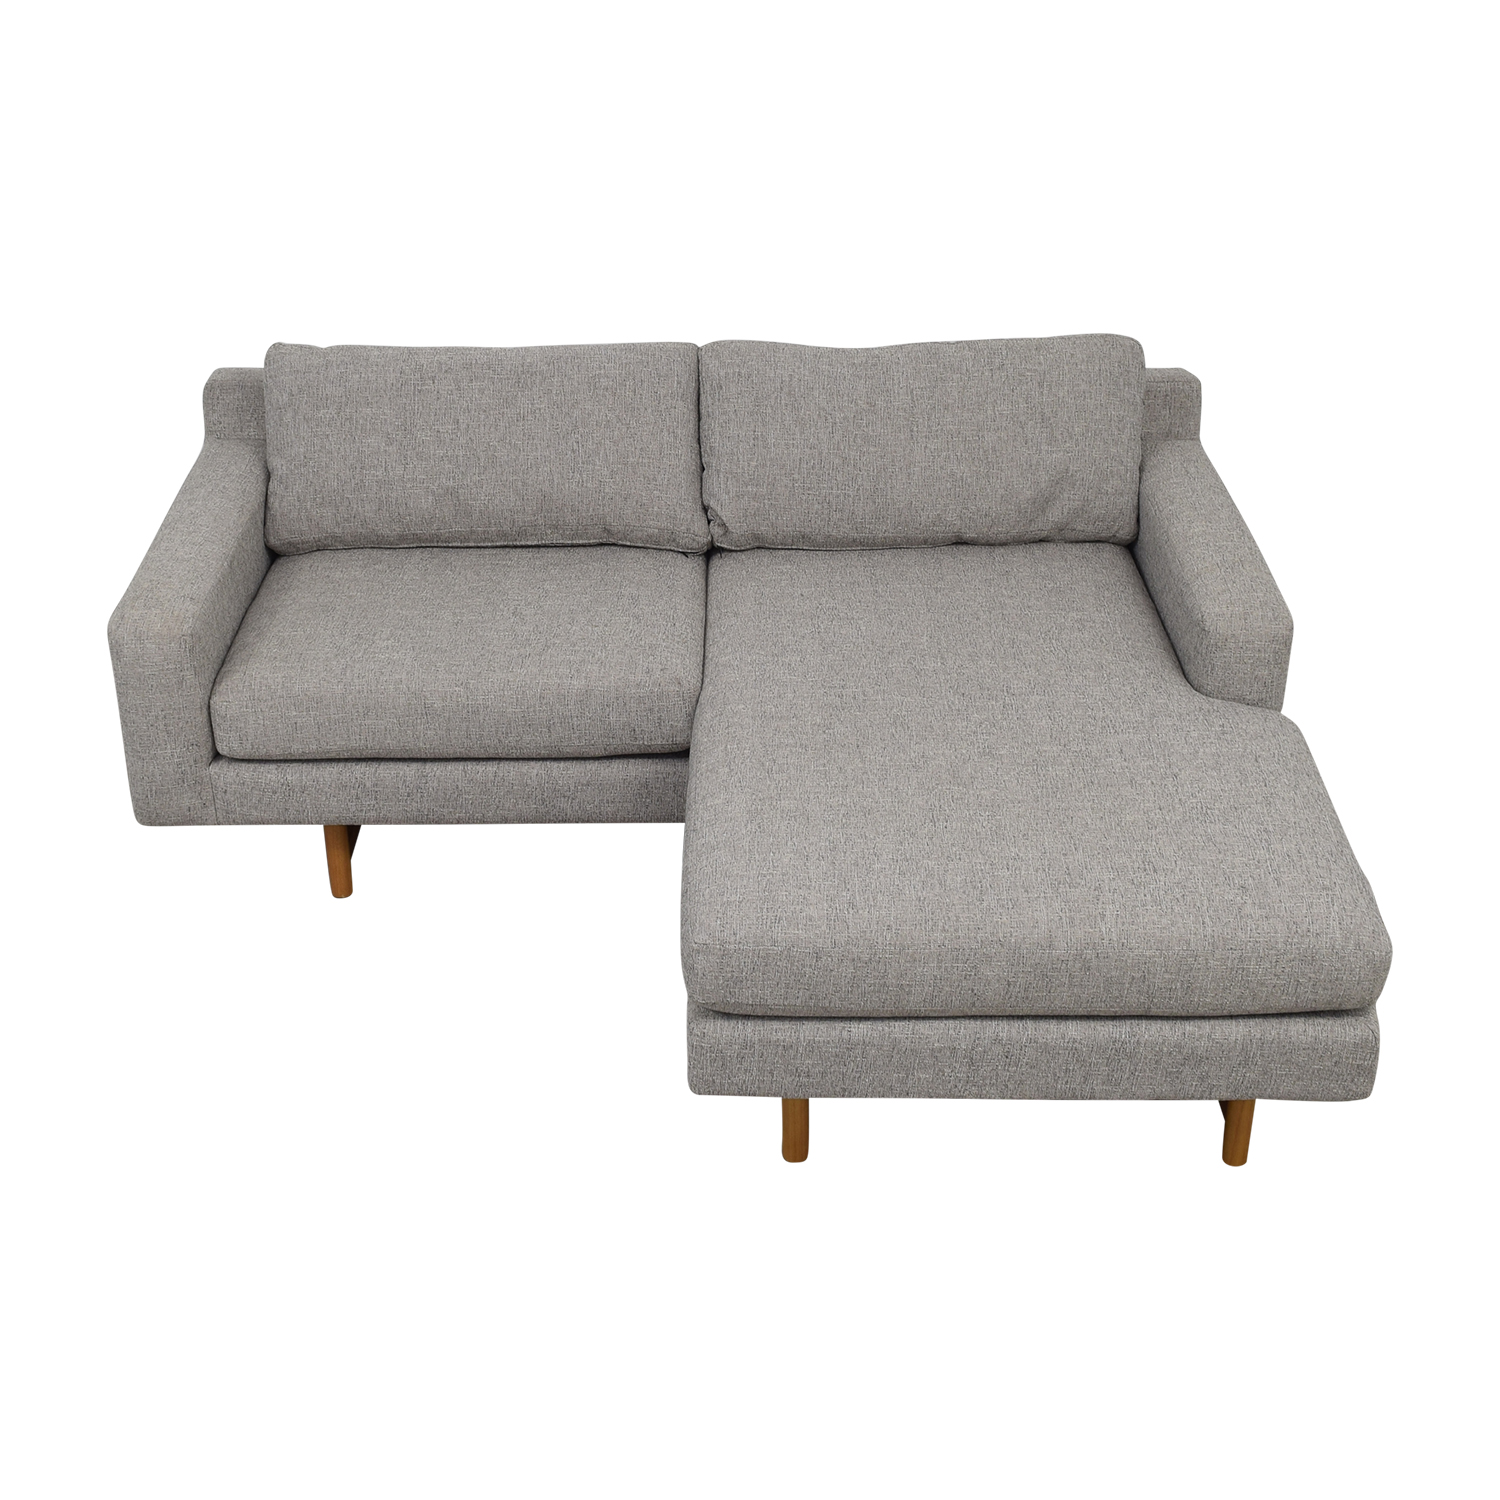 West Elm West Elm Eddy Flip Gray Chaise Sectional second hand